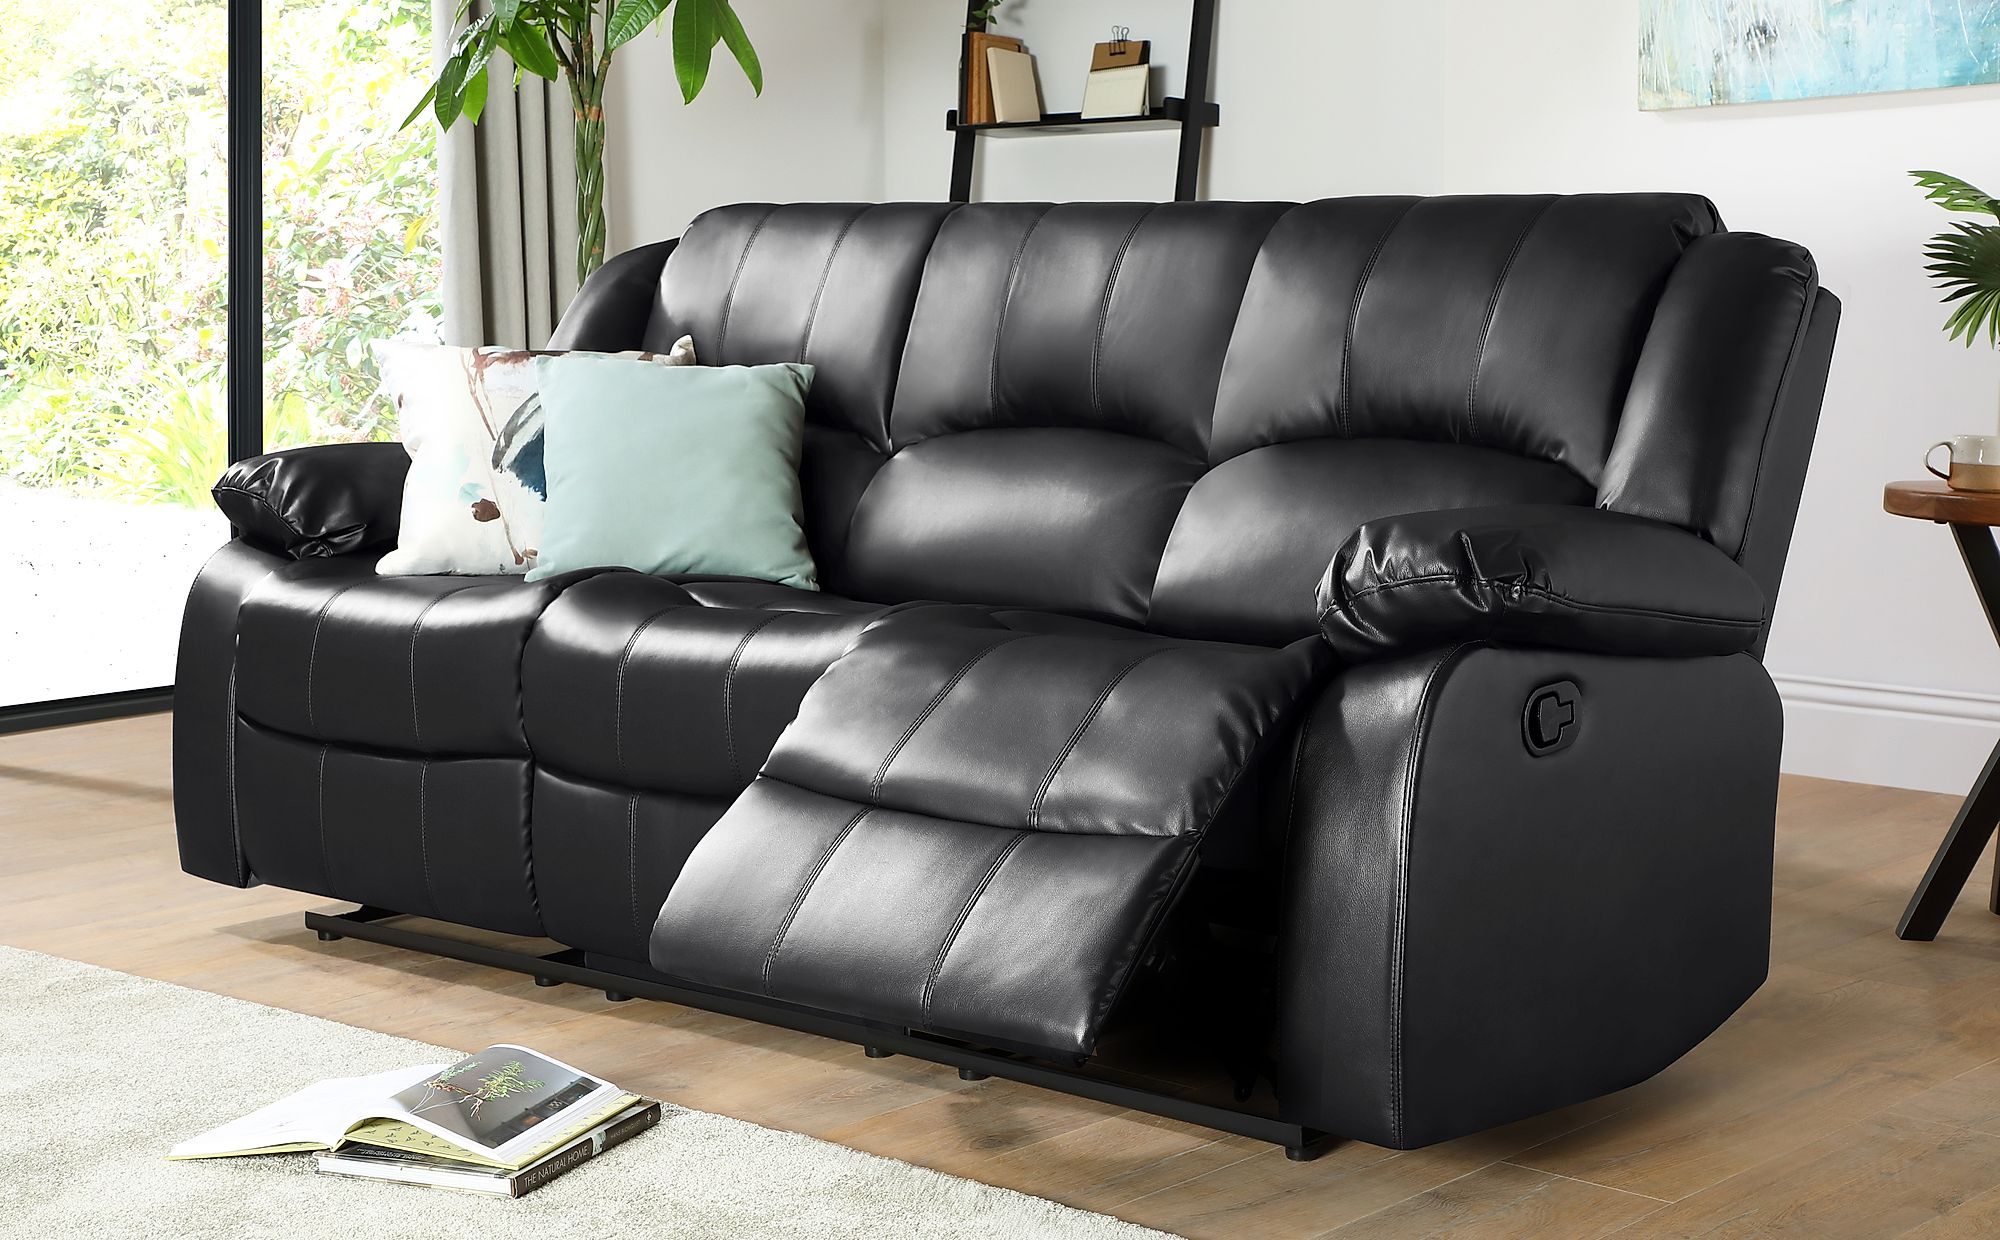 3 Seater Black Leather Recliner Sofa | Baci Living Room